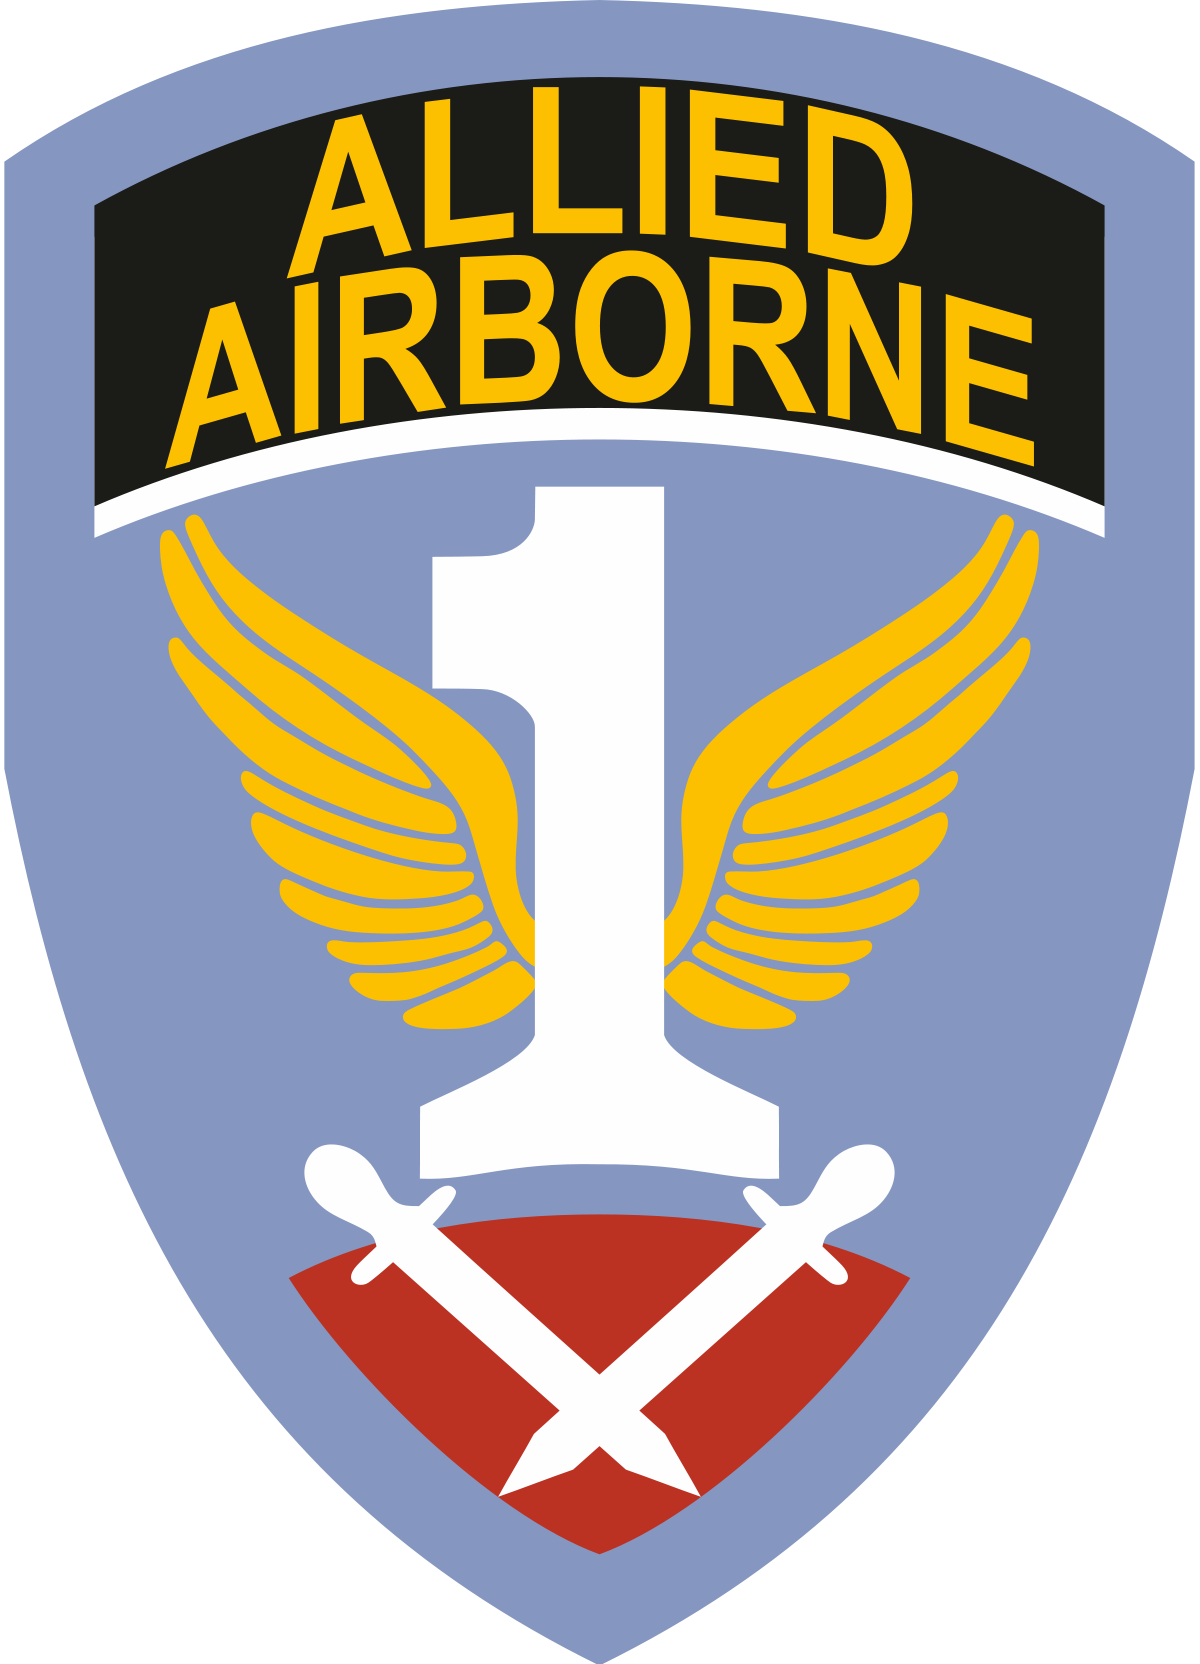 First Allied Airborne Army.